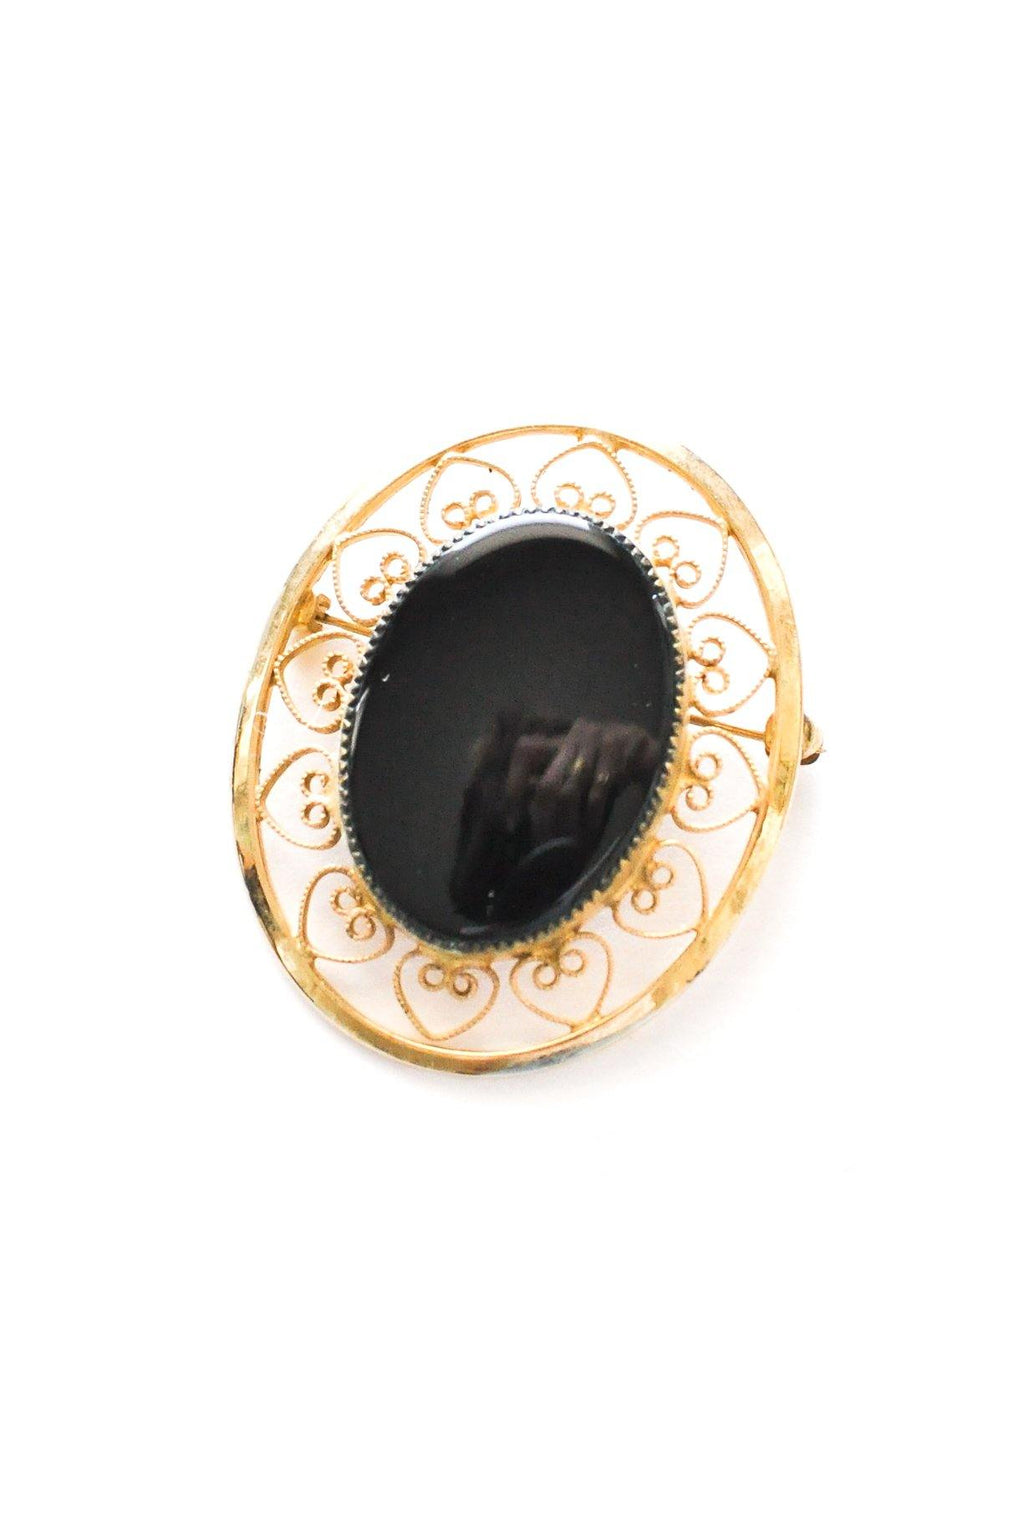 Oval Onyx Brooch